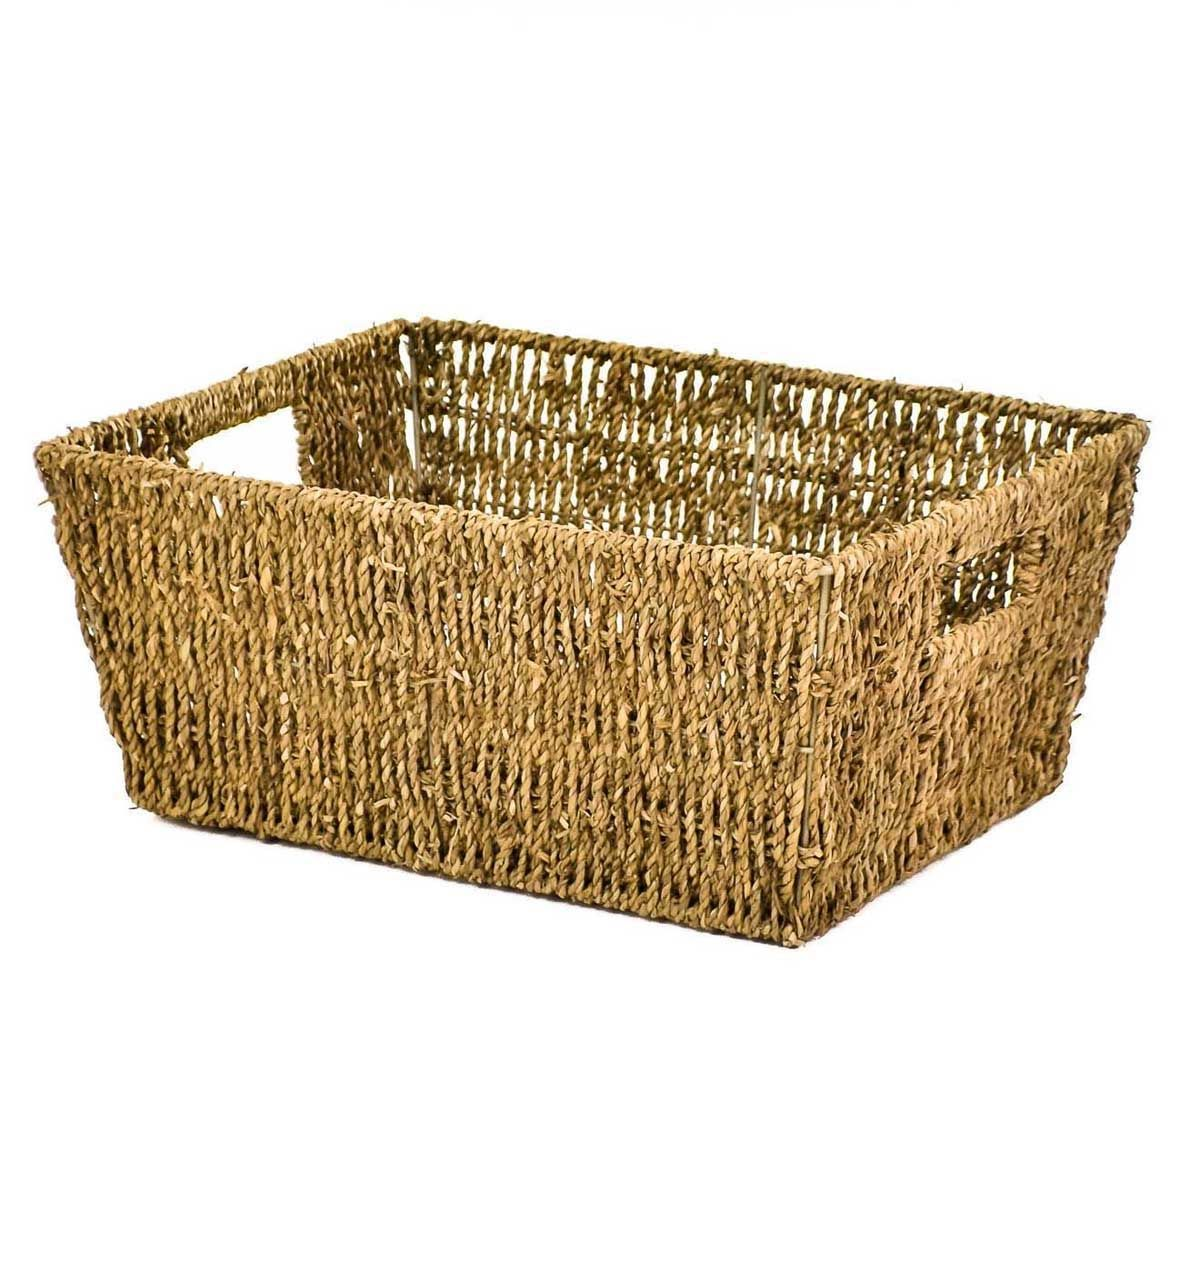 woven plastic garden chairs rental chair covers cost east2eden rectangular seagrass magazine storage basket